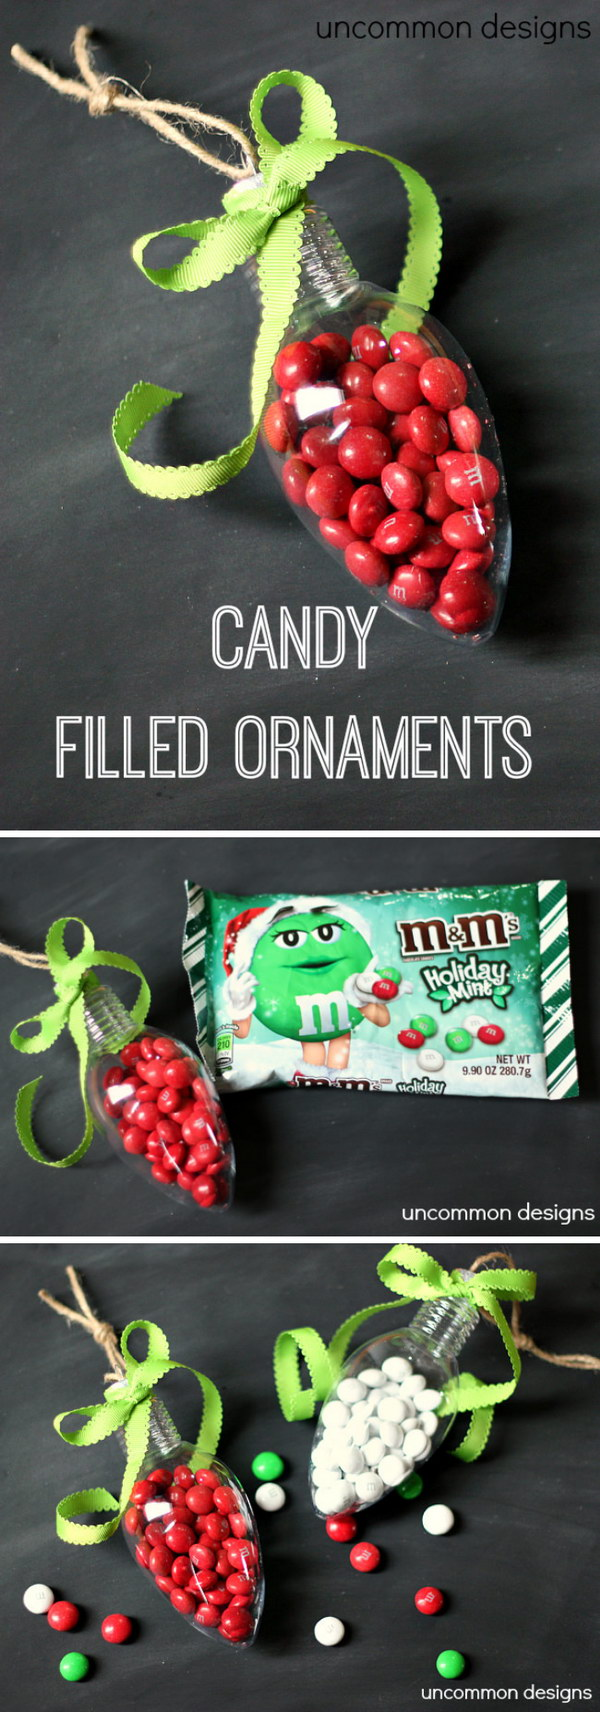 Candy Filled Ornaments.